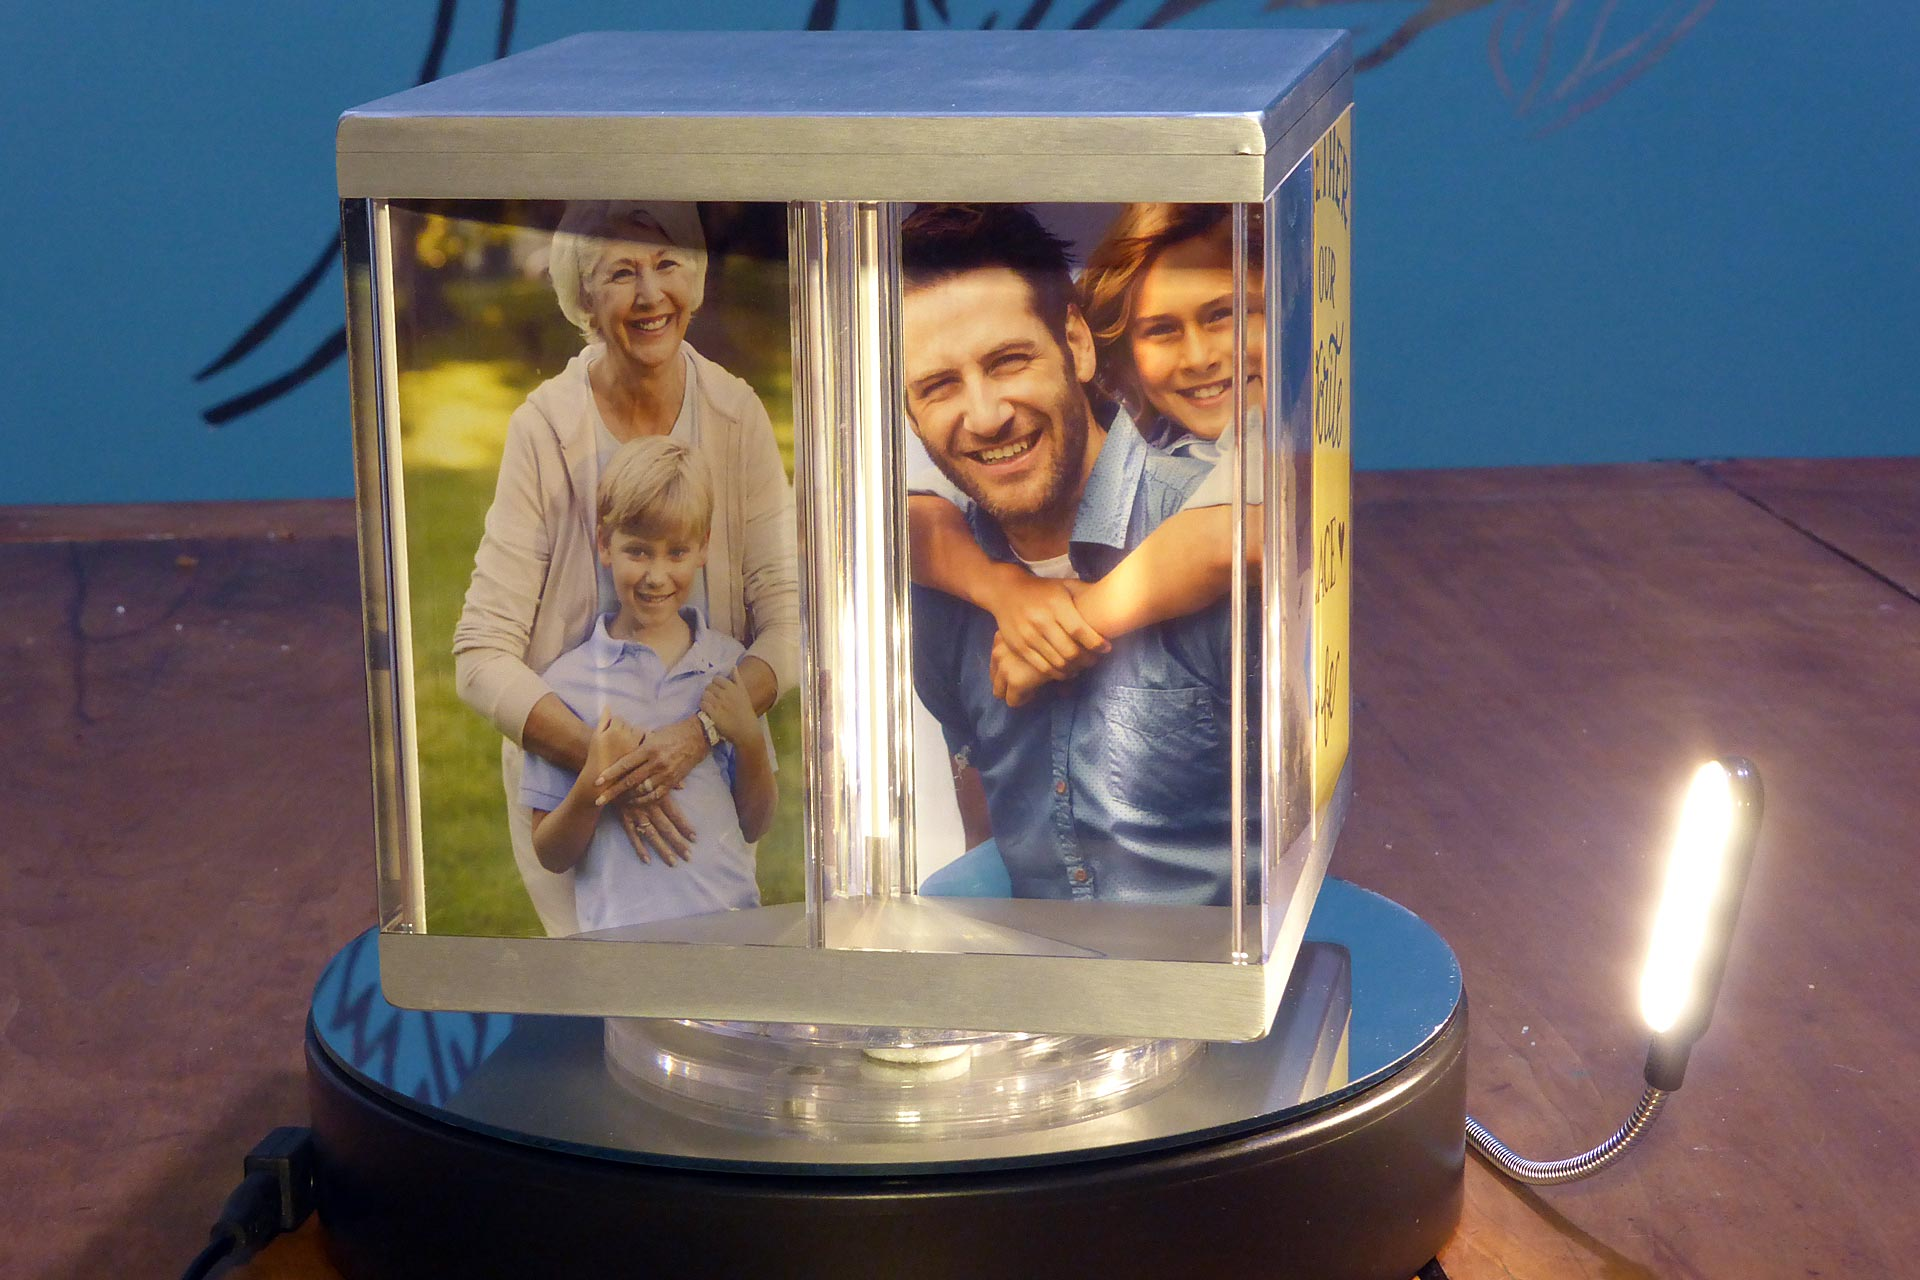 PixCube photo cube with family photographs and lamp